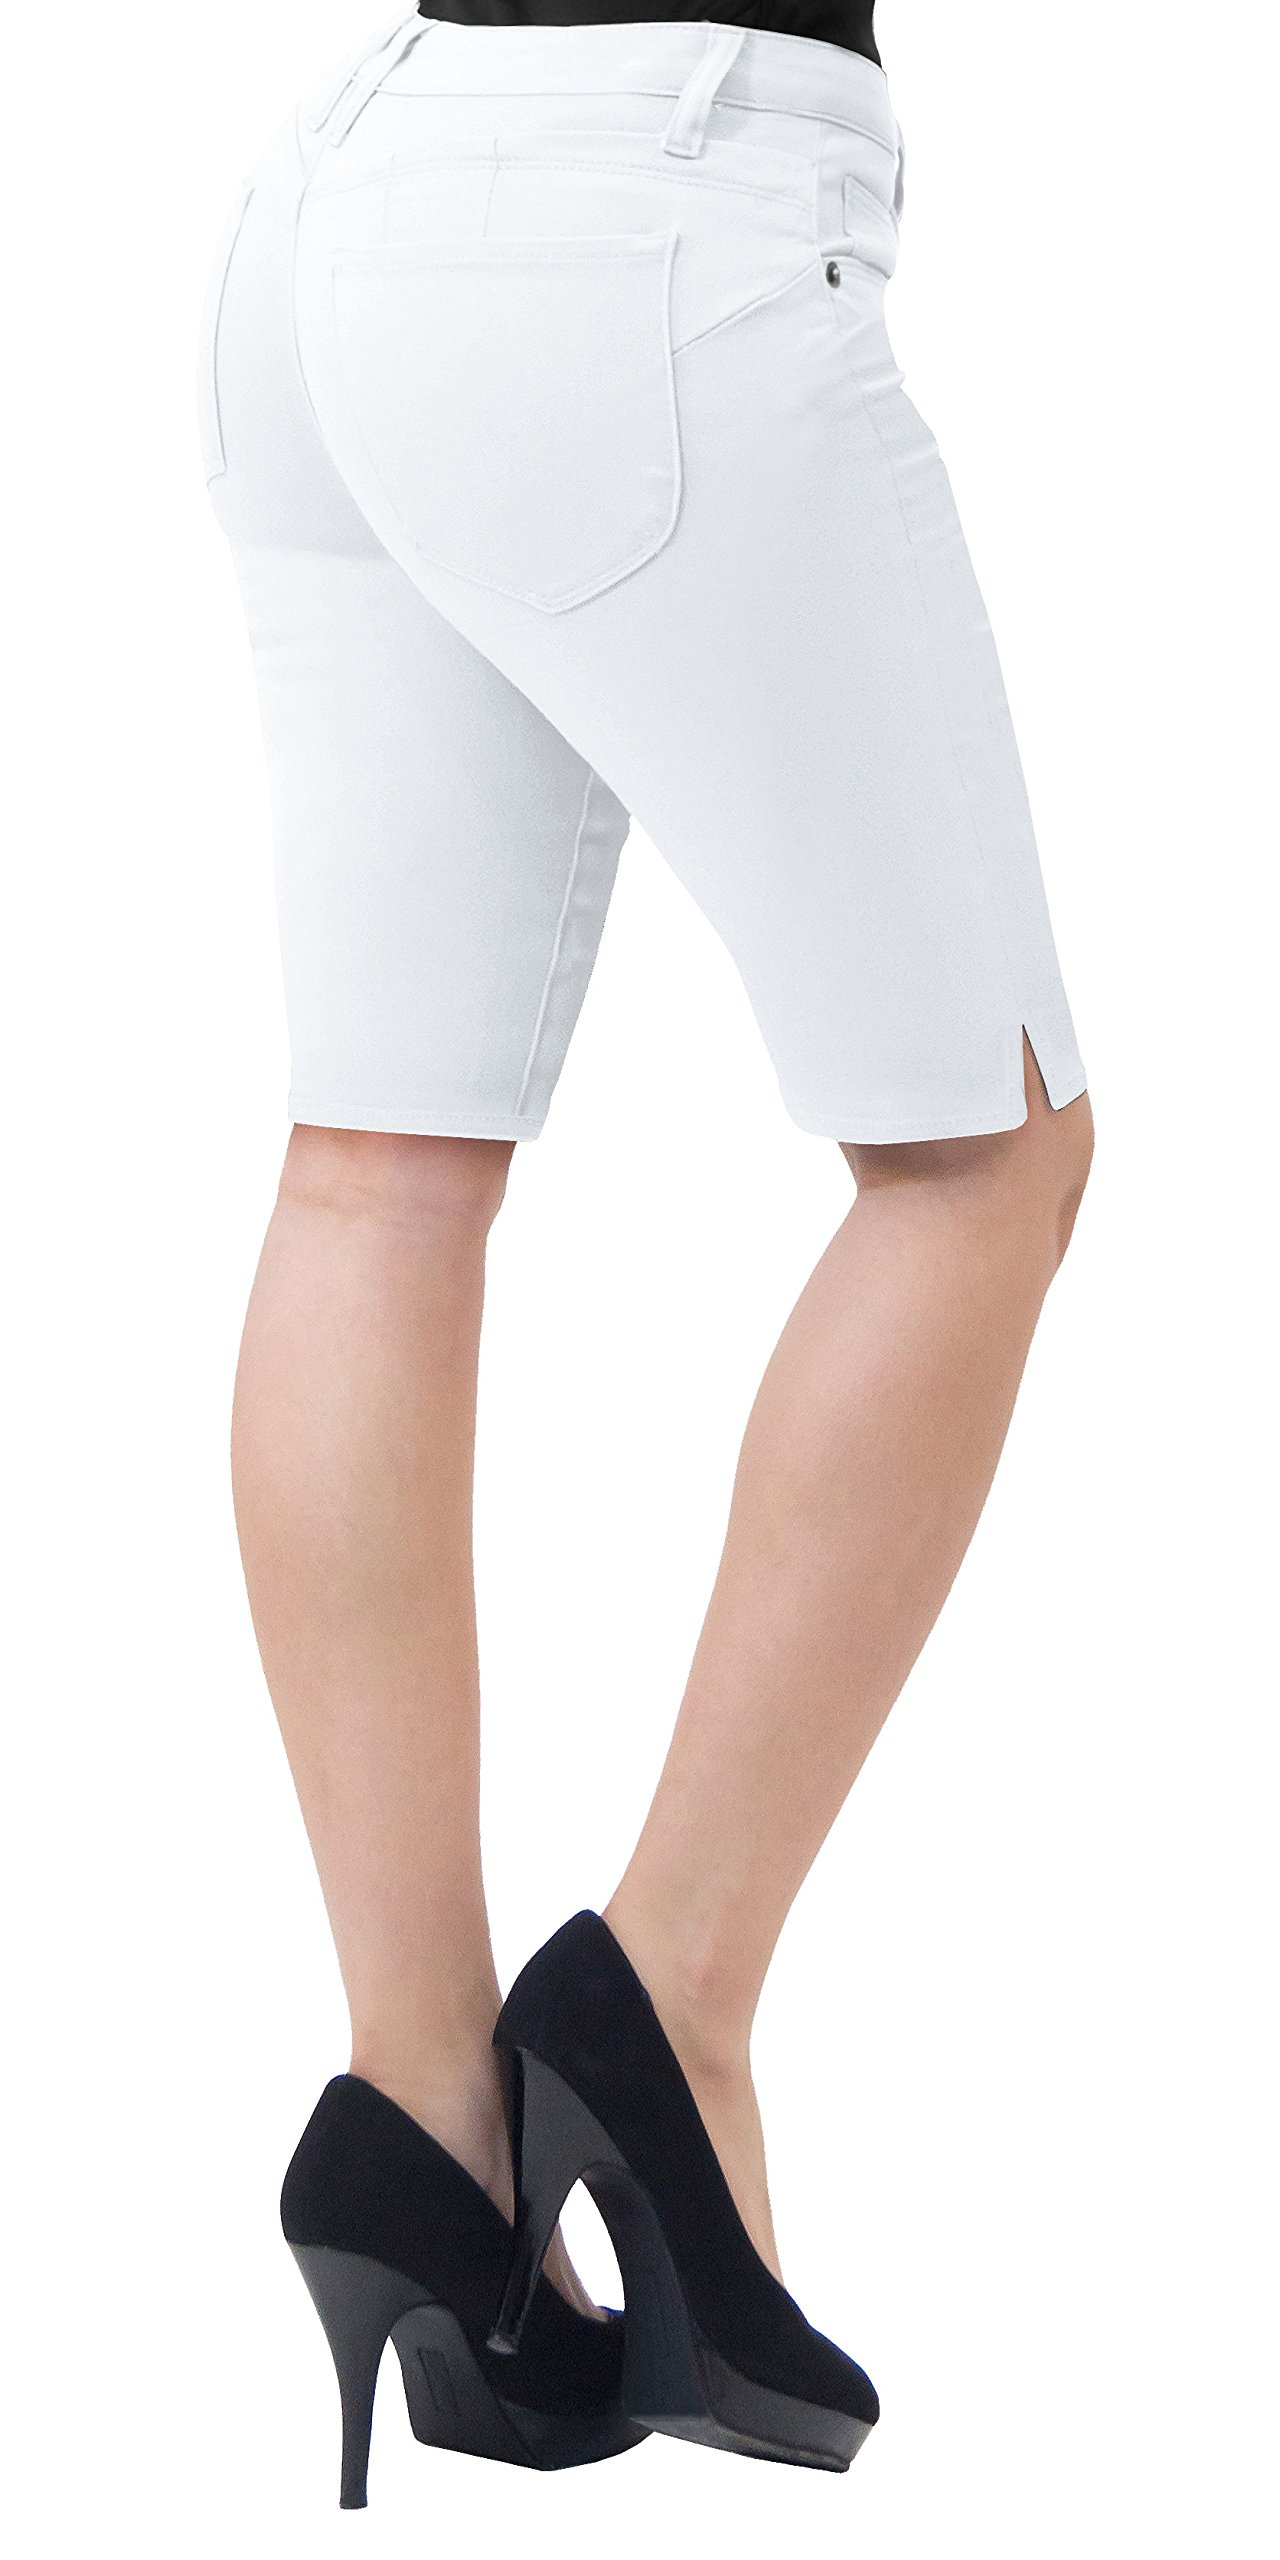 HyBrid & Company Super Comfy Stretch Bermuda Shorts B43301X White 16